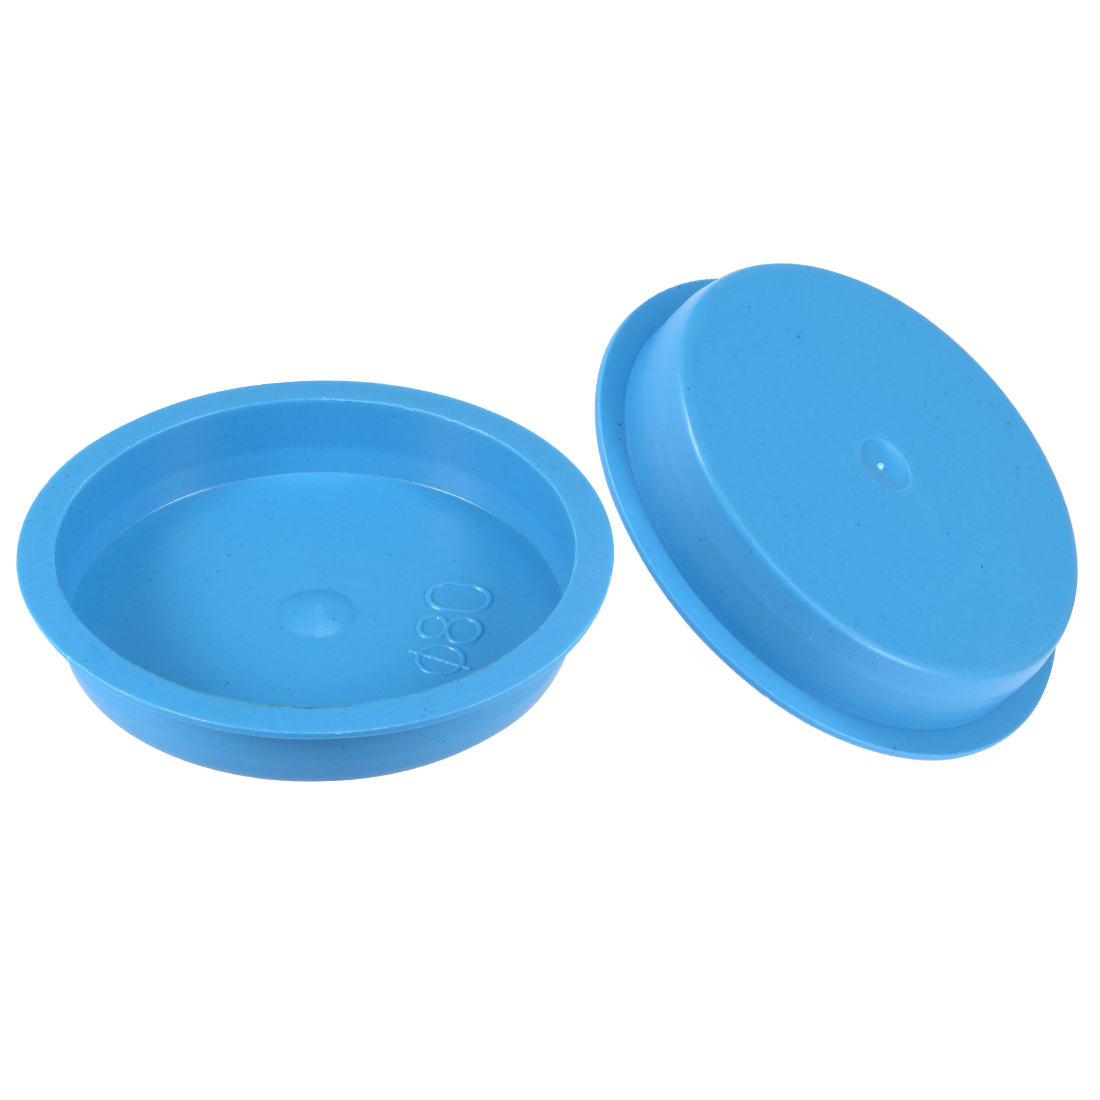 10pcs PE 80mm x 15mm Round Head Hole Stoppers Waterproof Tapered Caps Blue